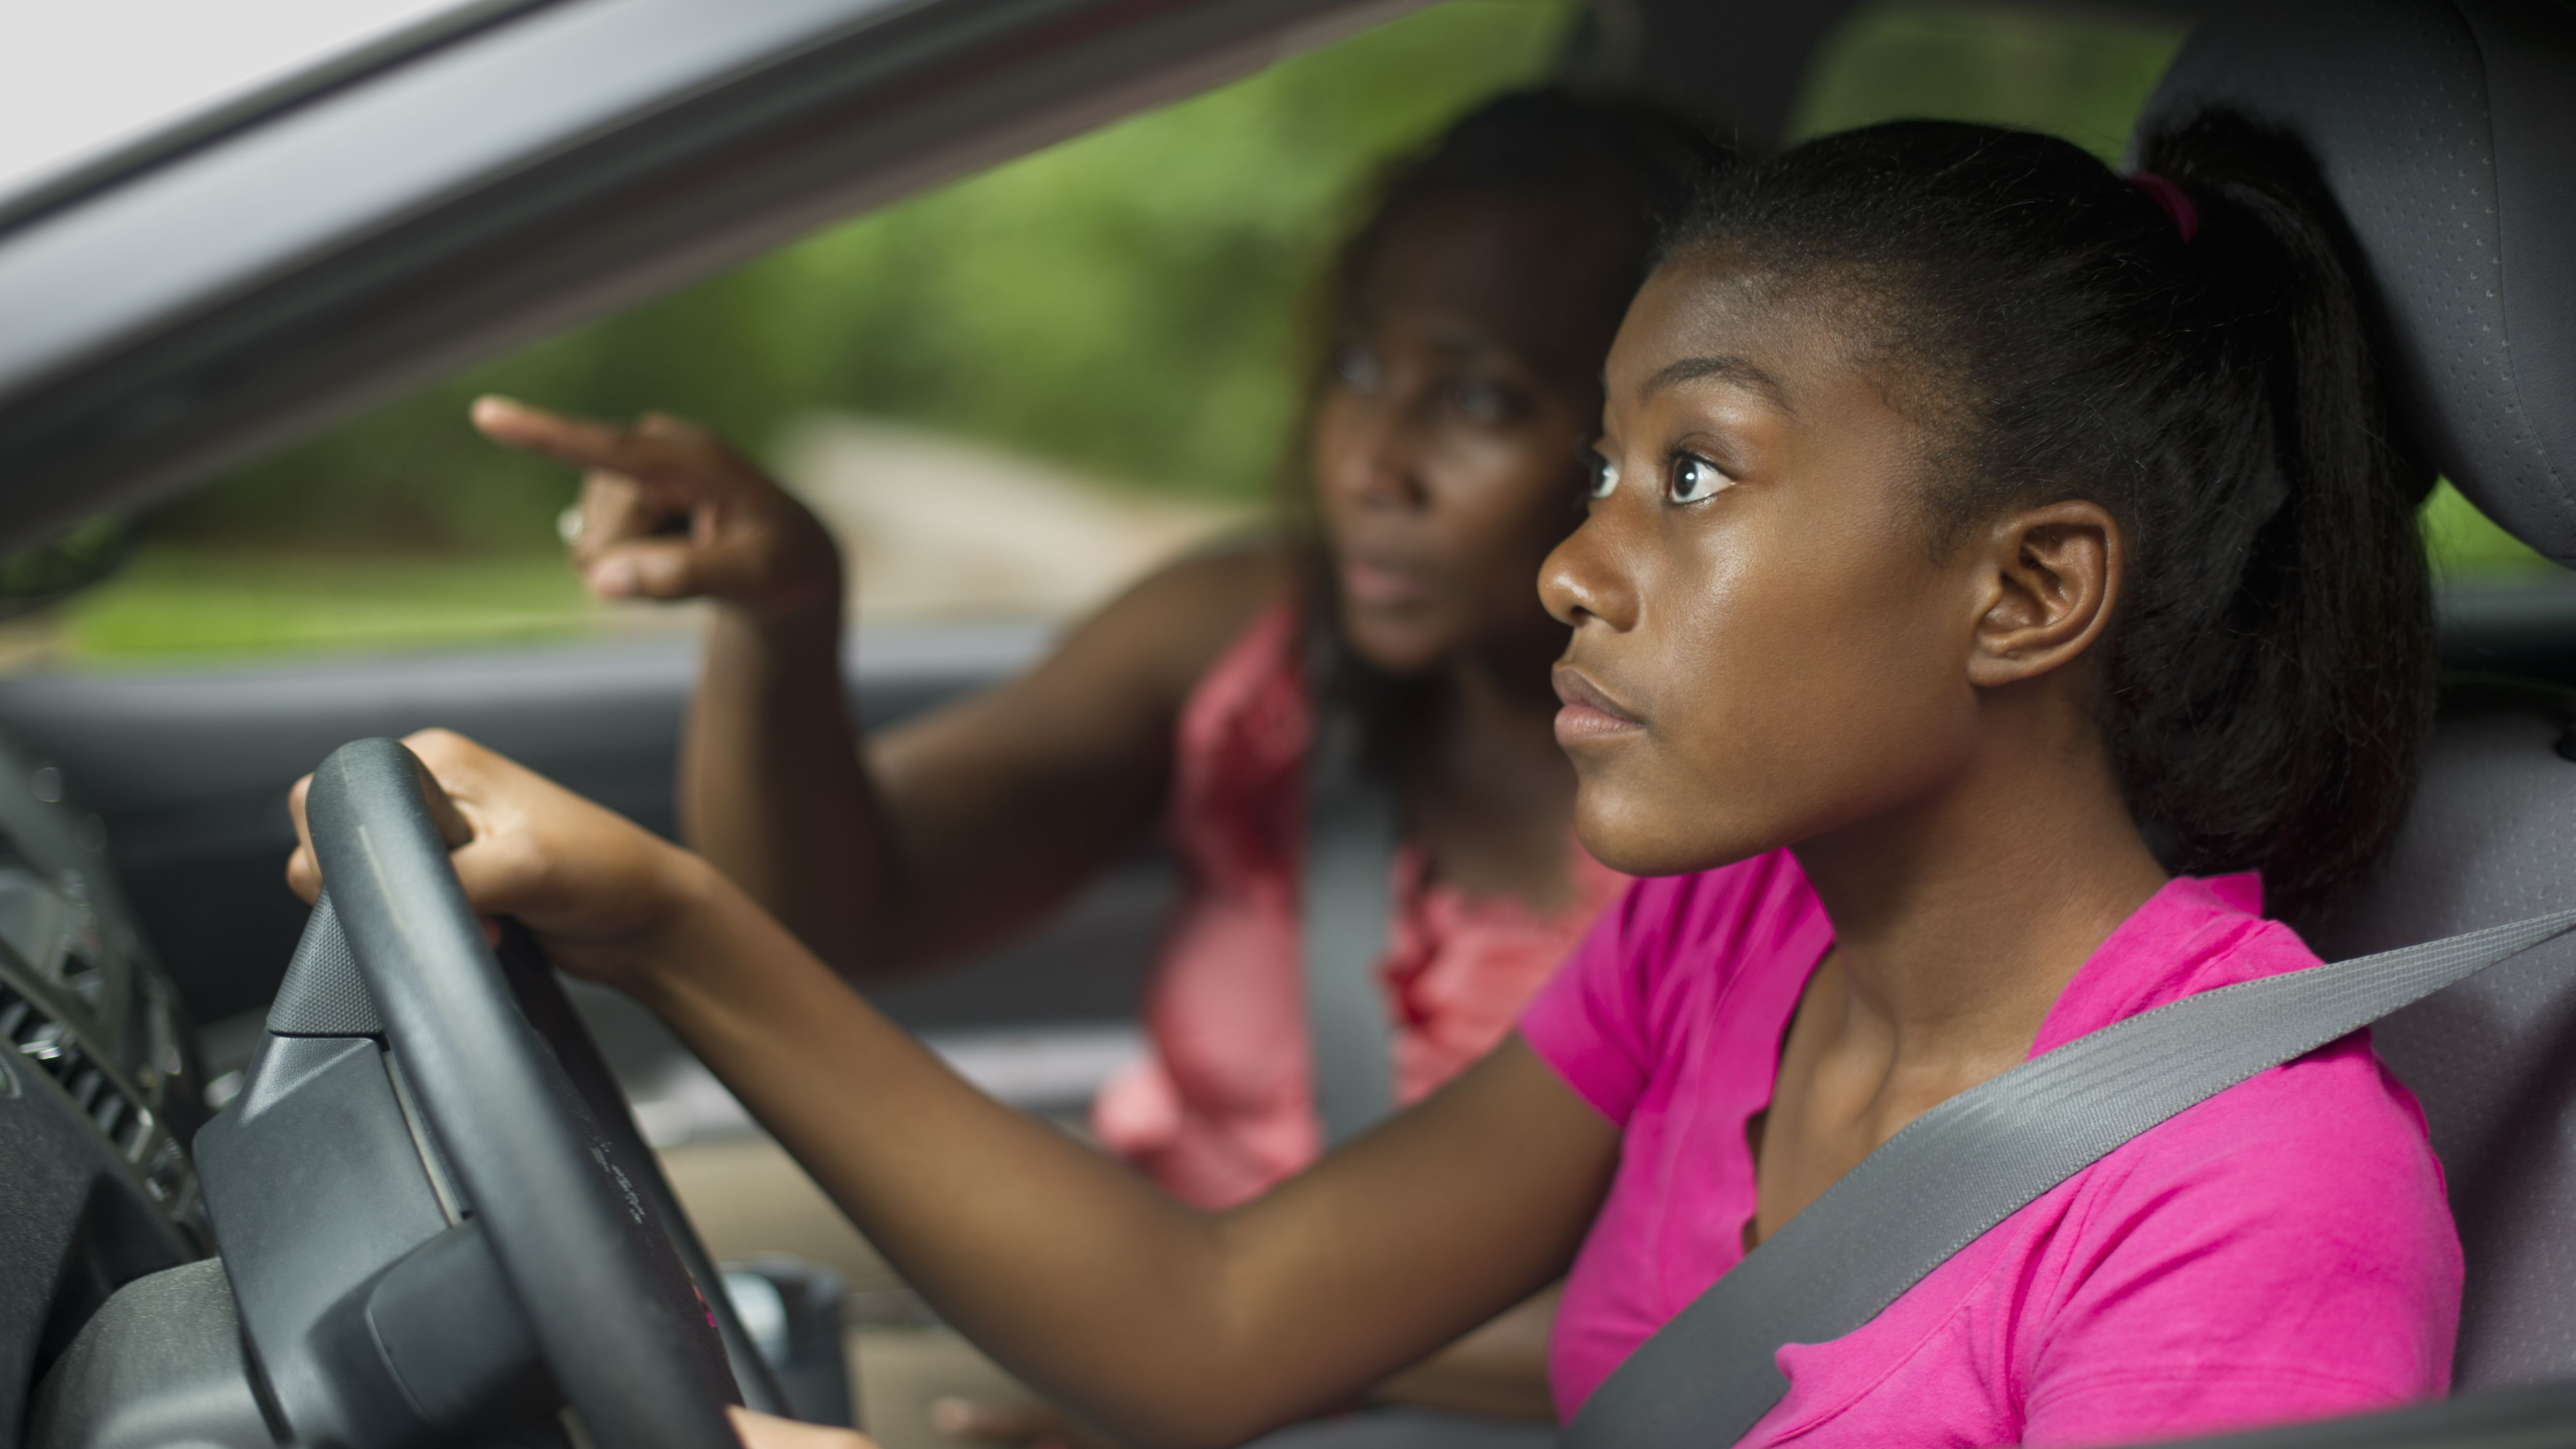 Car Insurance Facts for 16-Year-Olds